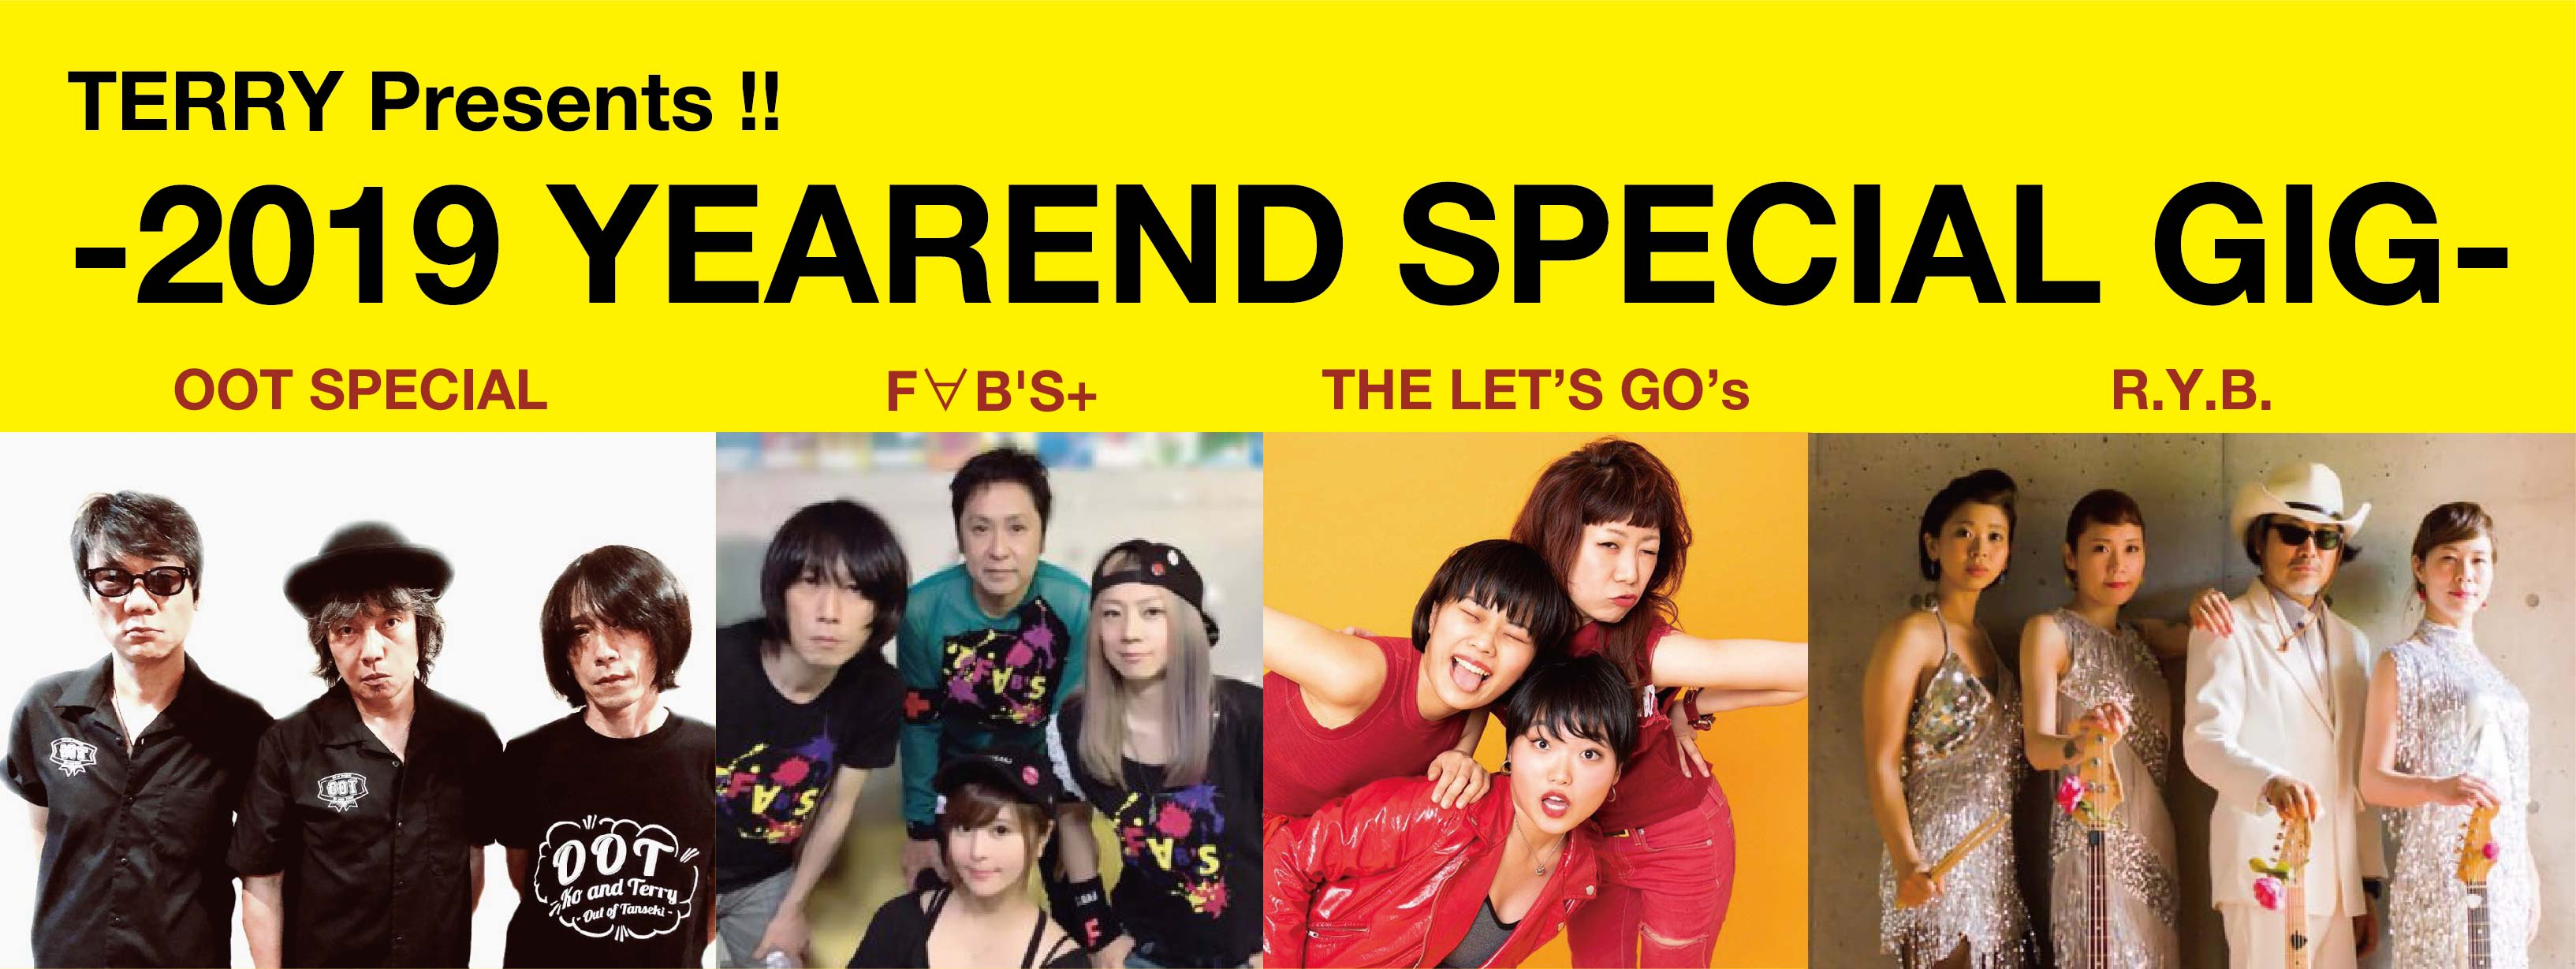 TERRY Presents !! -2019 YEAREND SPECIAL GIG-